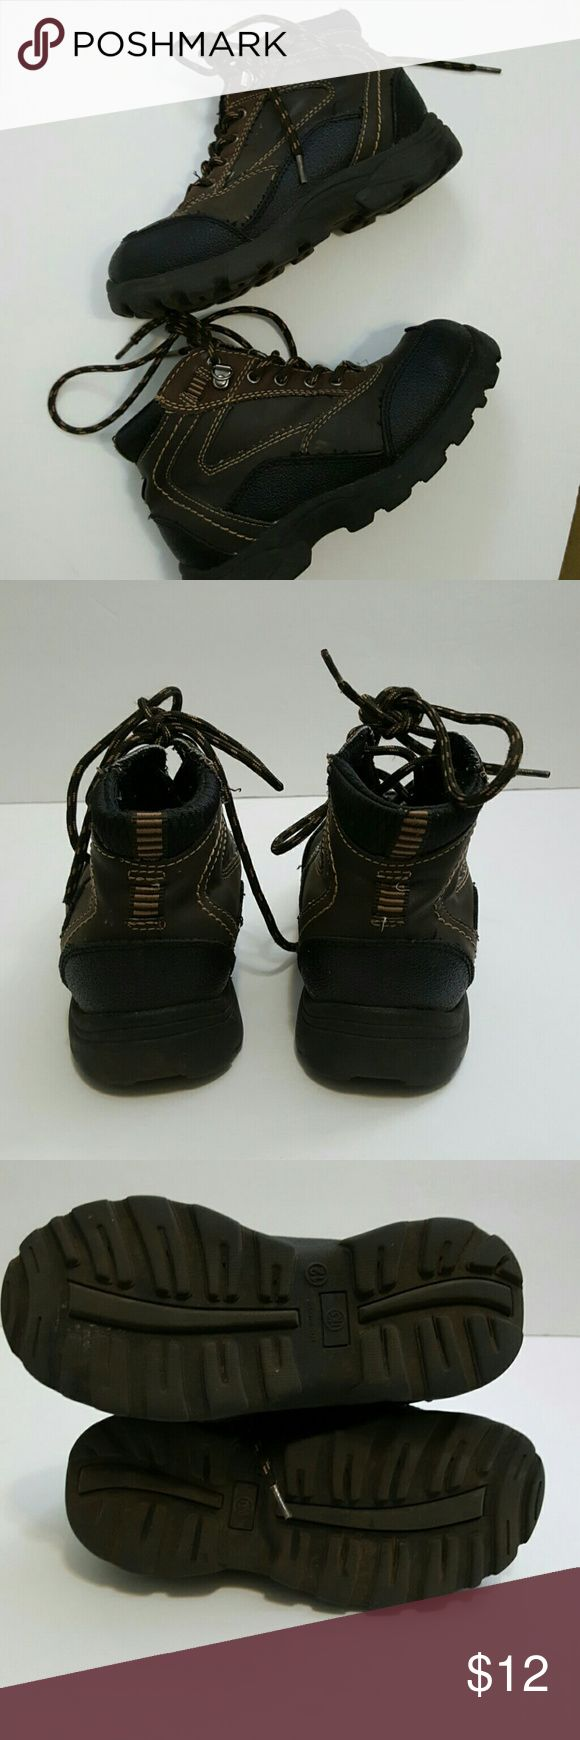 Boy's hiking boots Boy's brown hiking boots Size 12 Lace up  Man made material Used but lots of wear left Shoes Boots